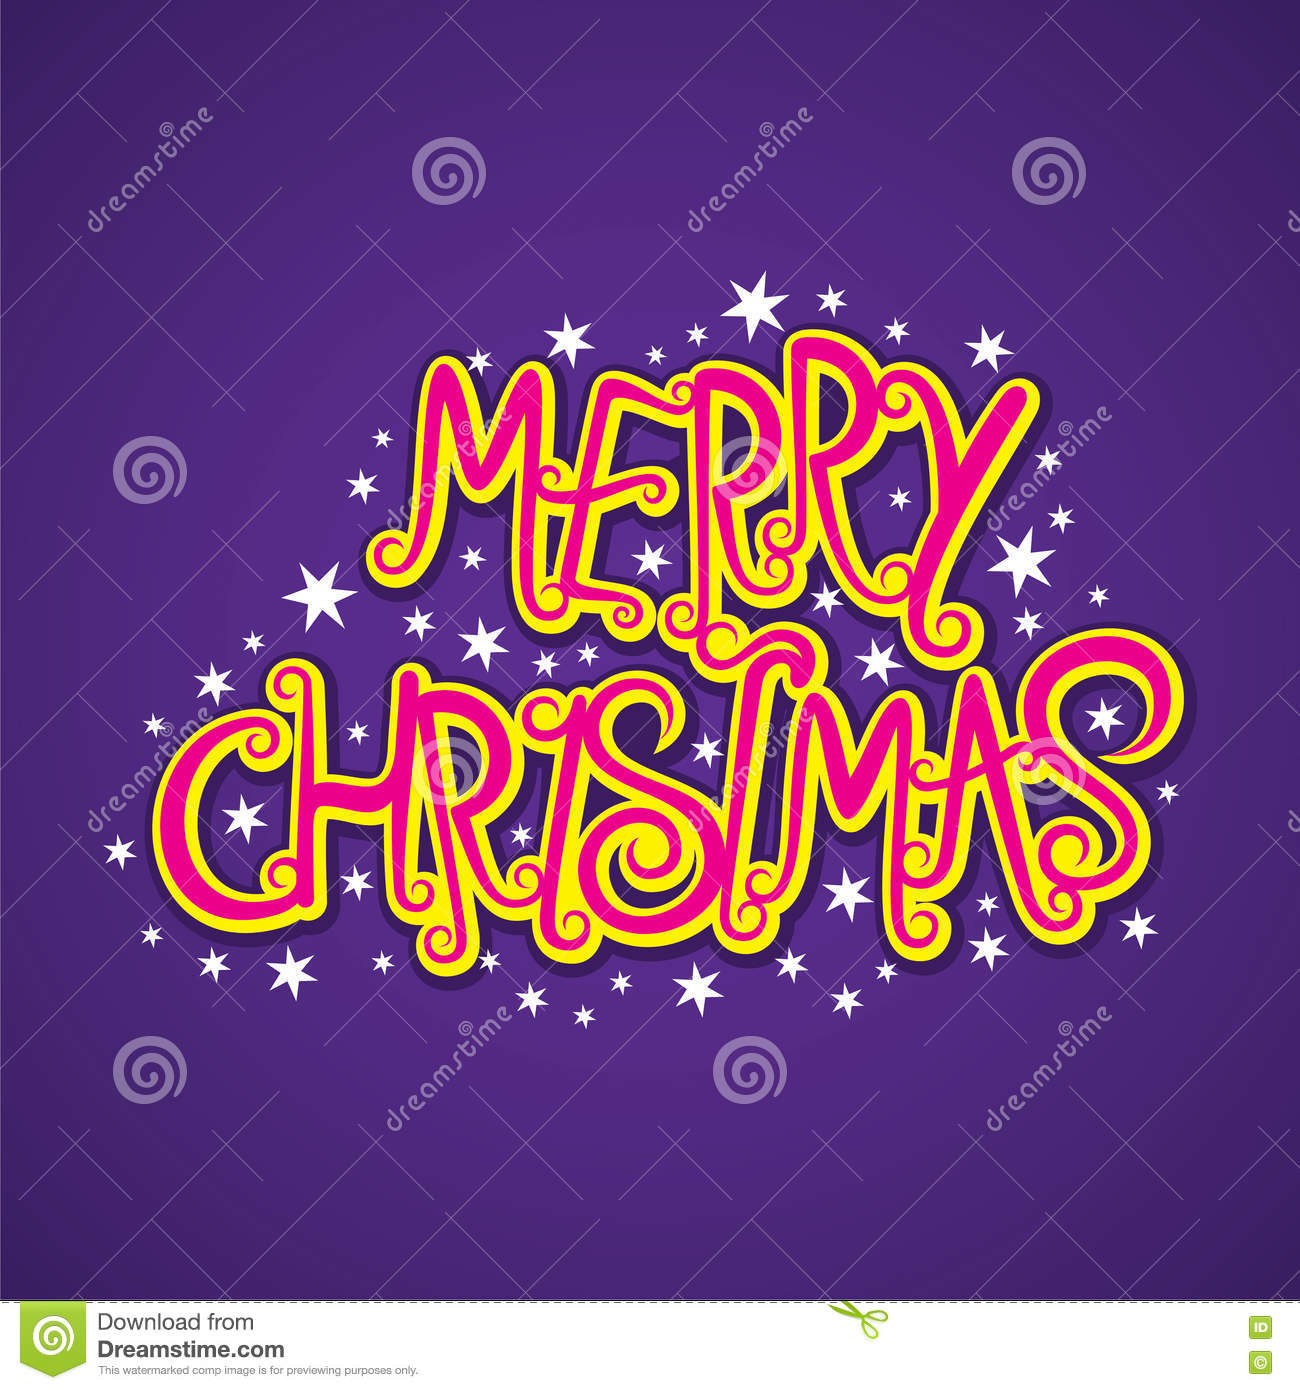 Merry Christmas Poster Design Stock Vector - Image: 79579767